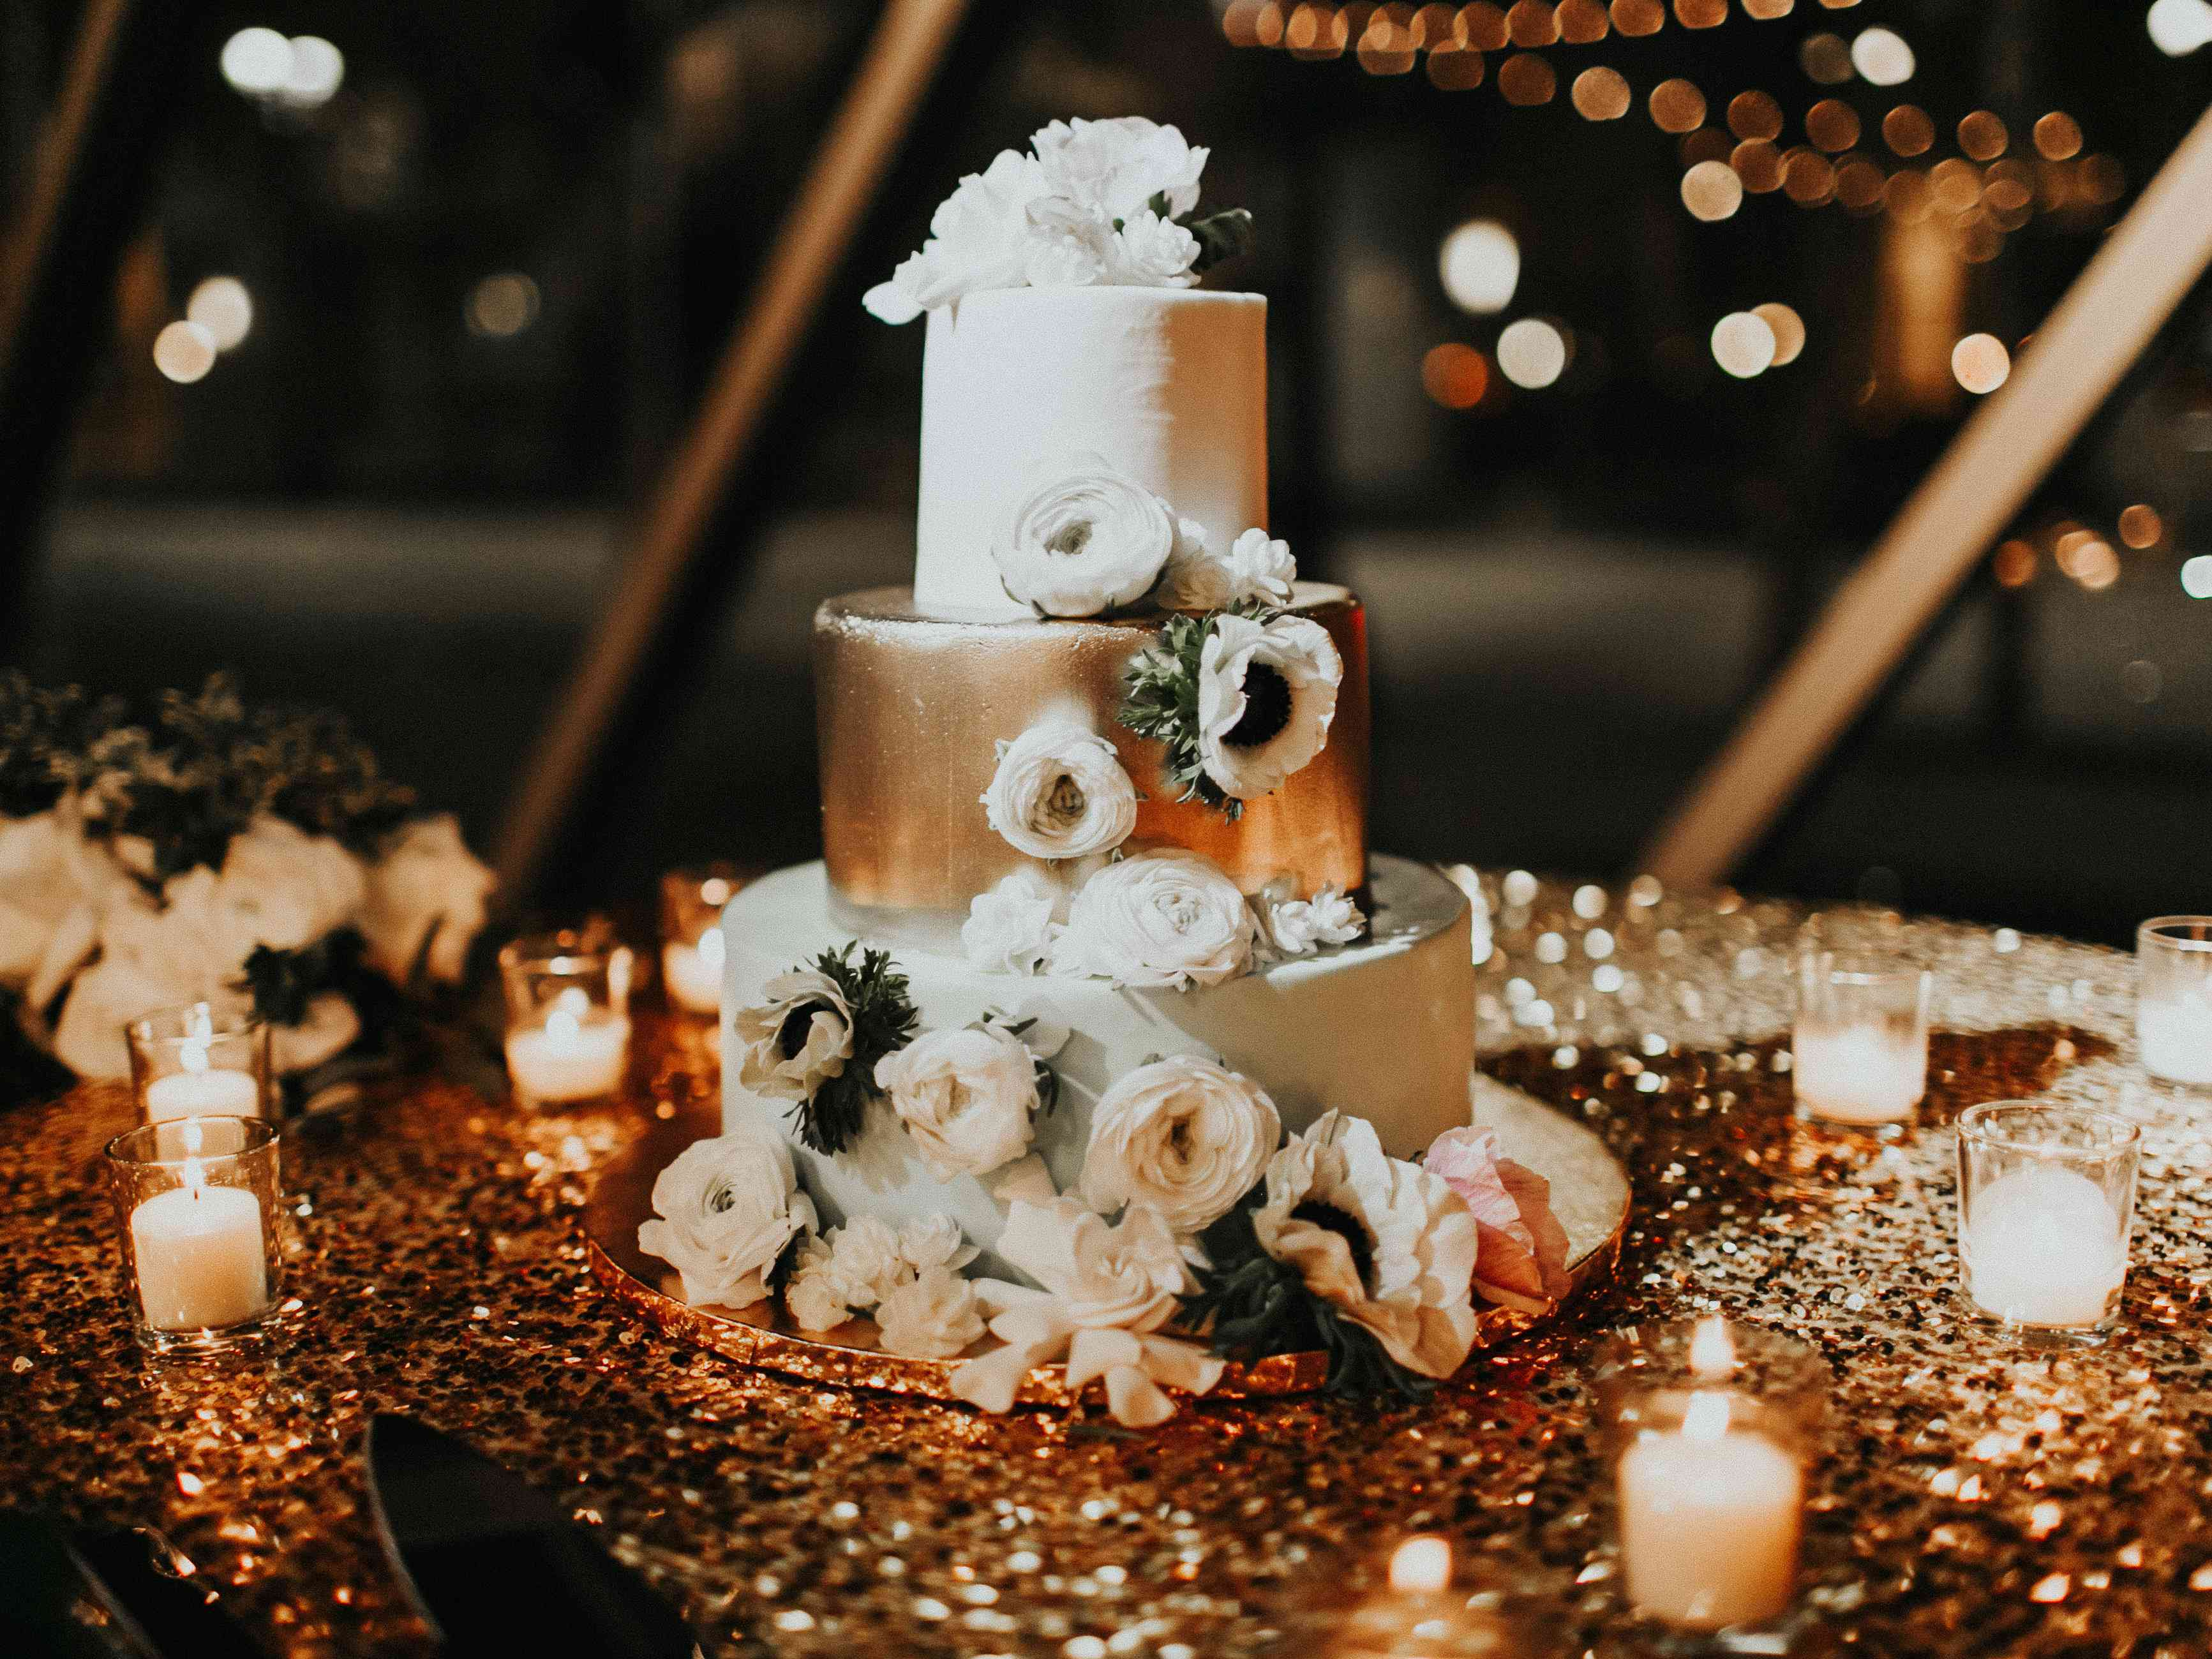 White and Silver Wedding Cake with White Flowers